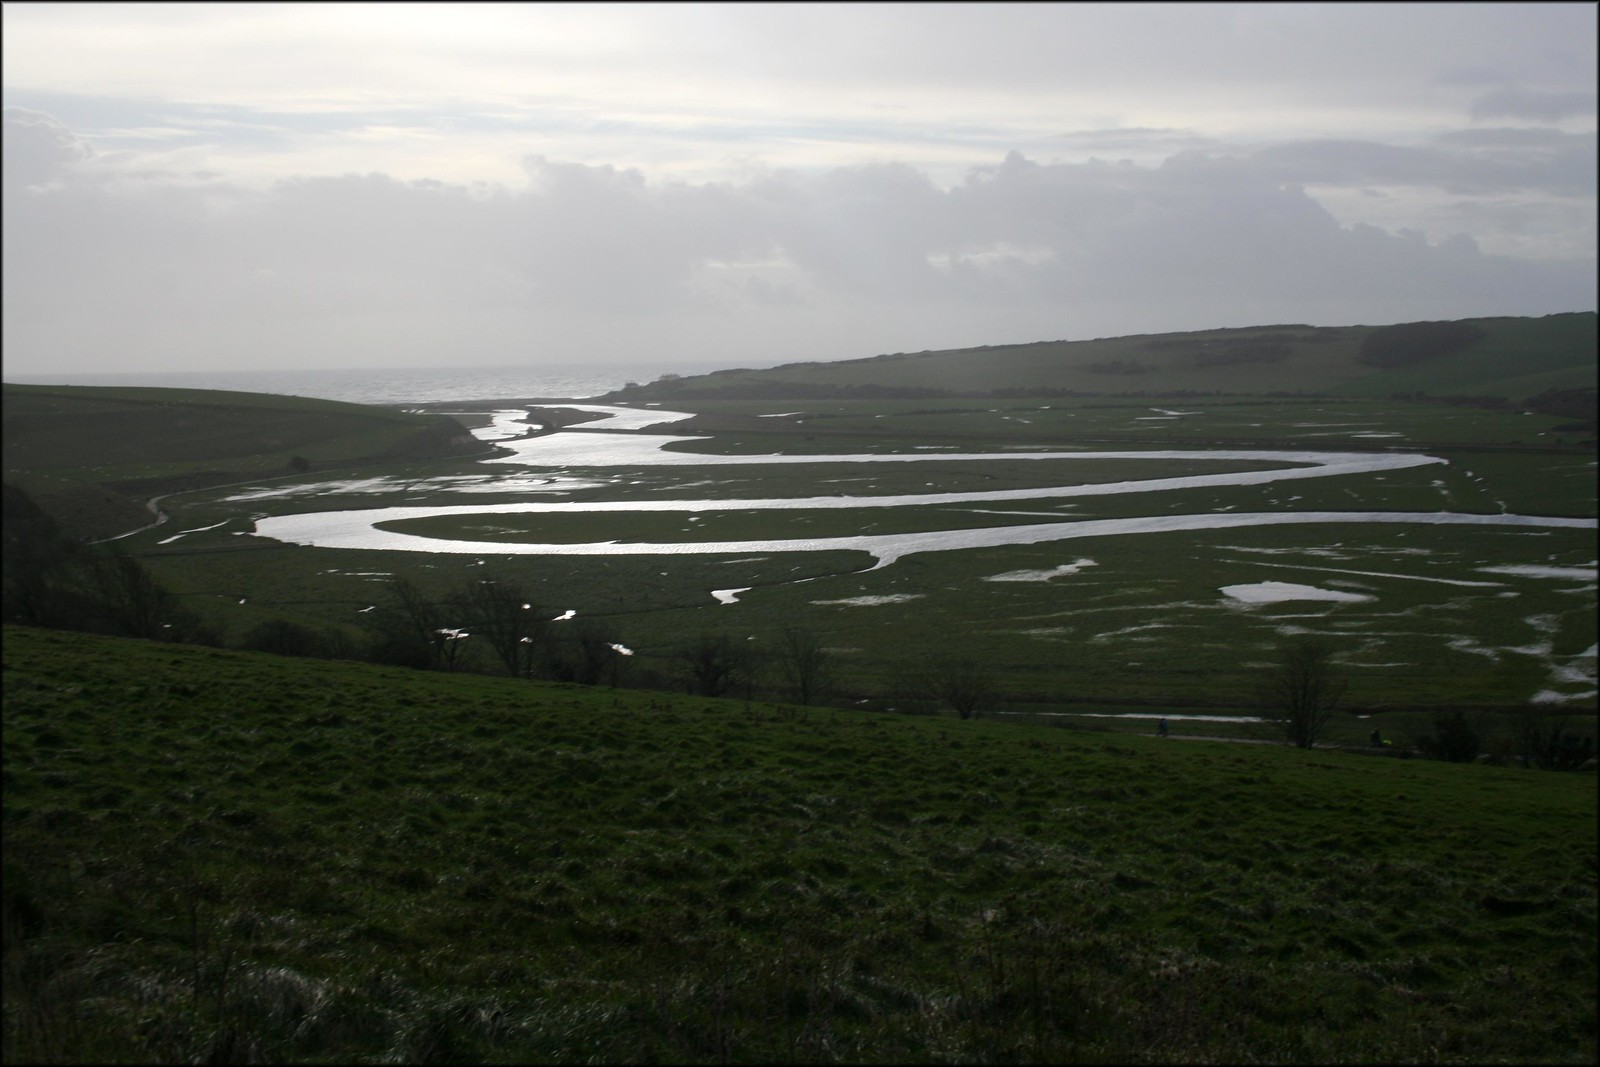 The Cuckmere river at Exceat